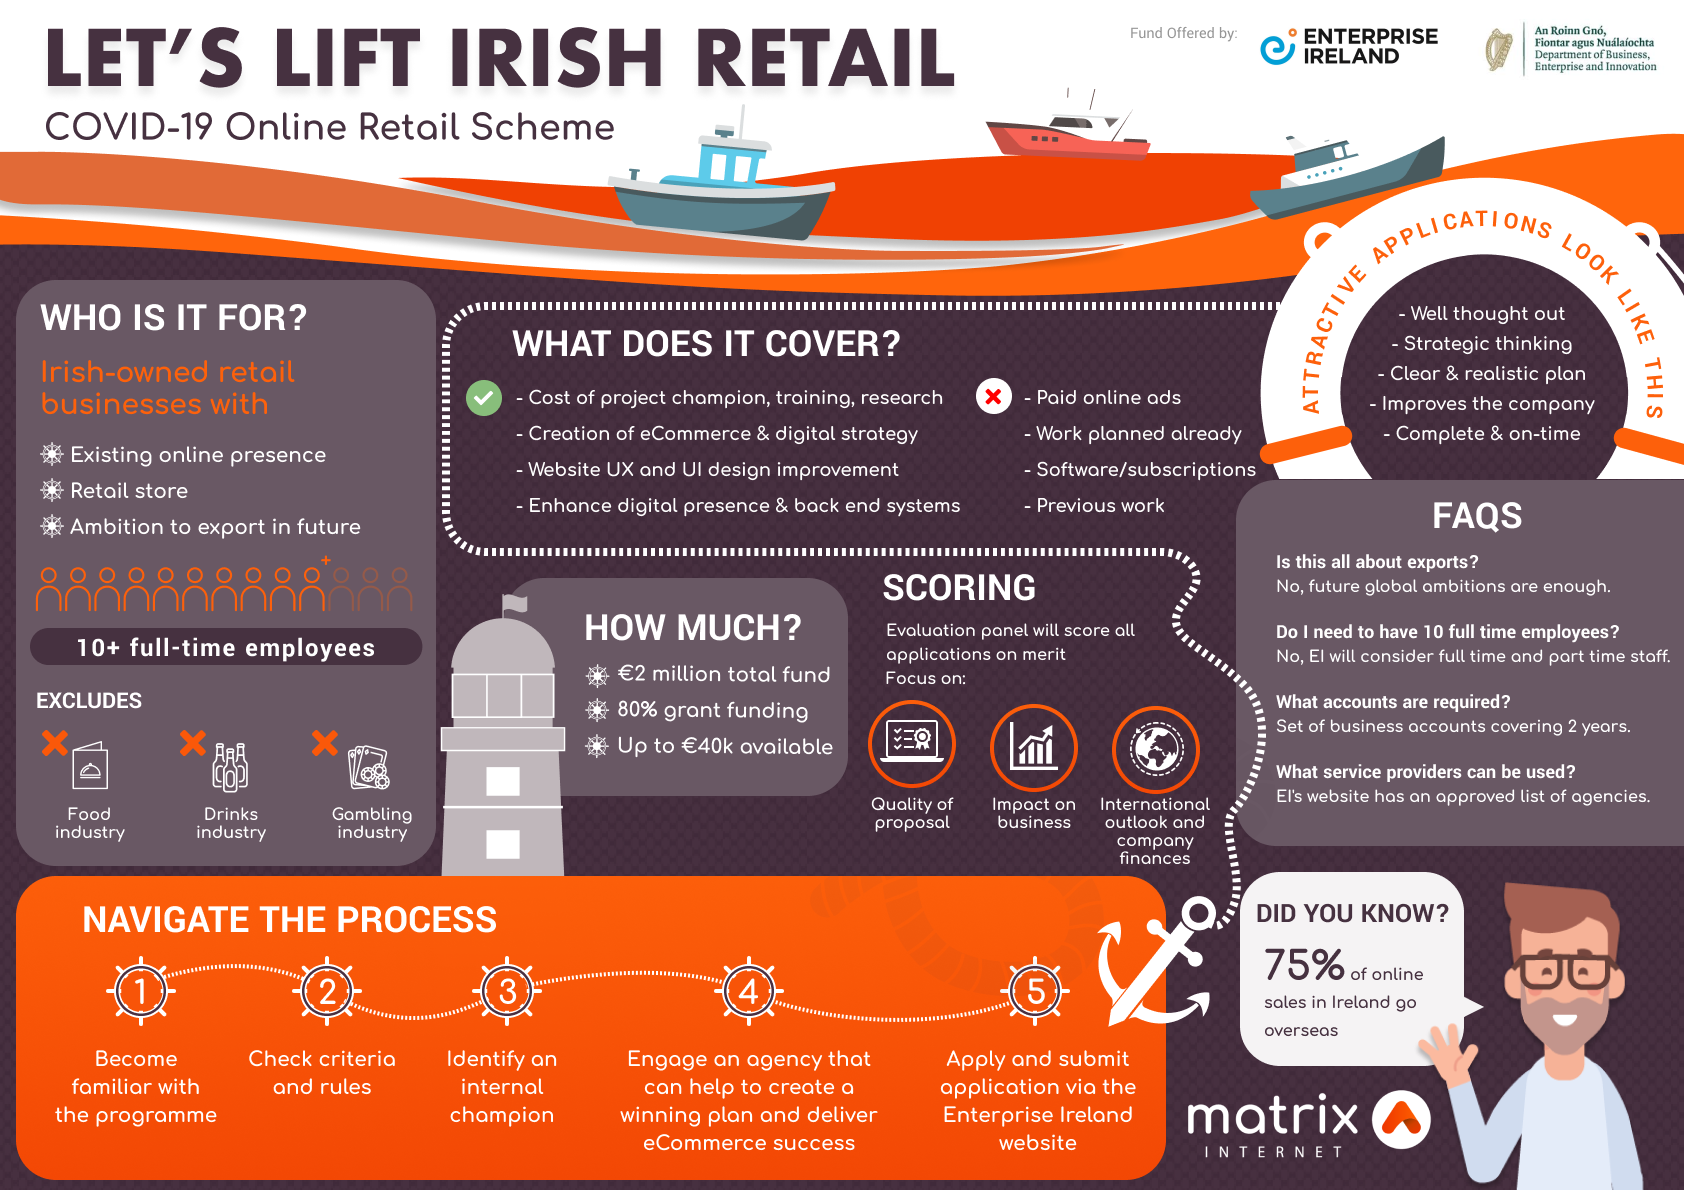 Enterprise Ireland Online Retail Scheme